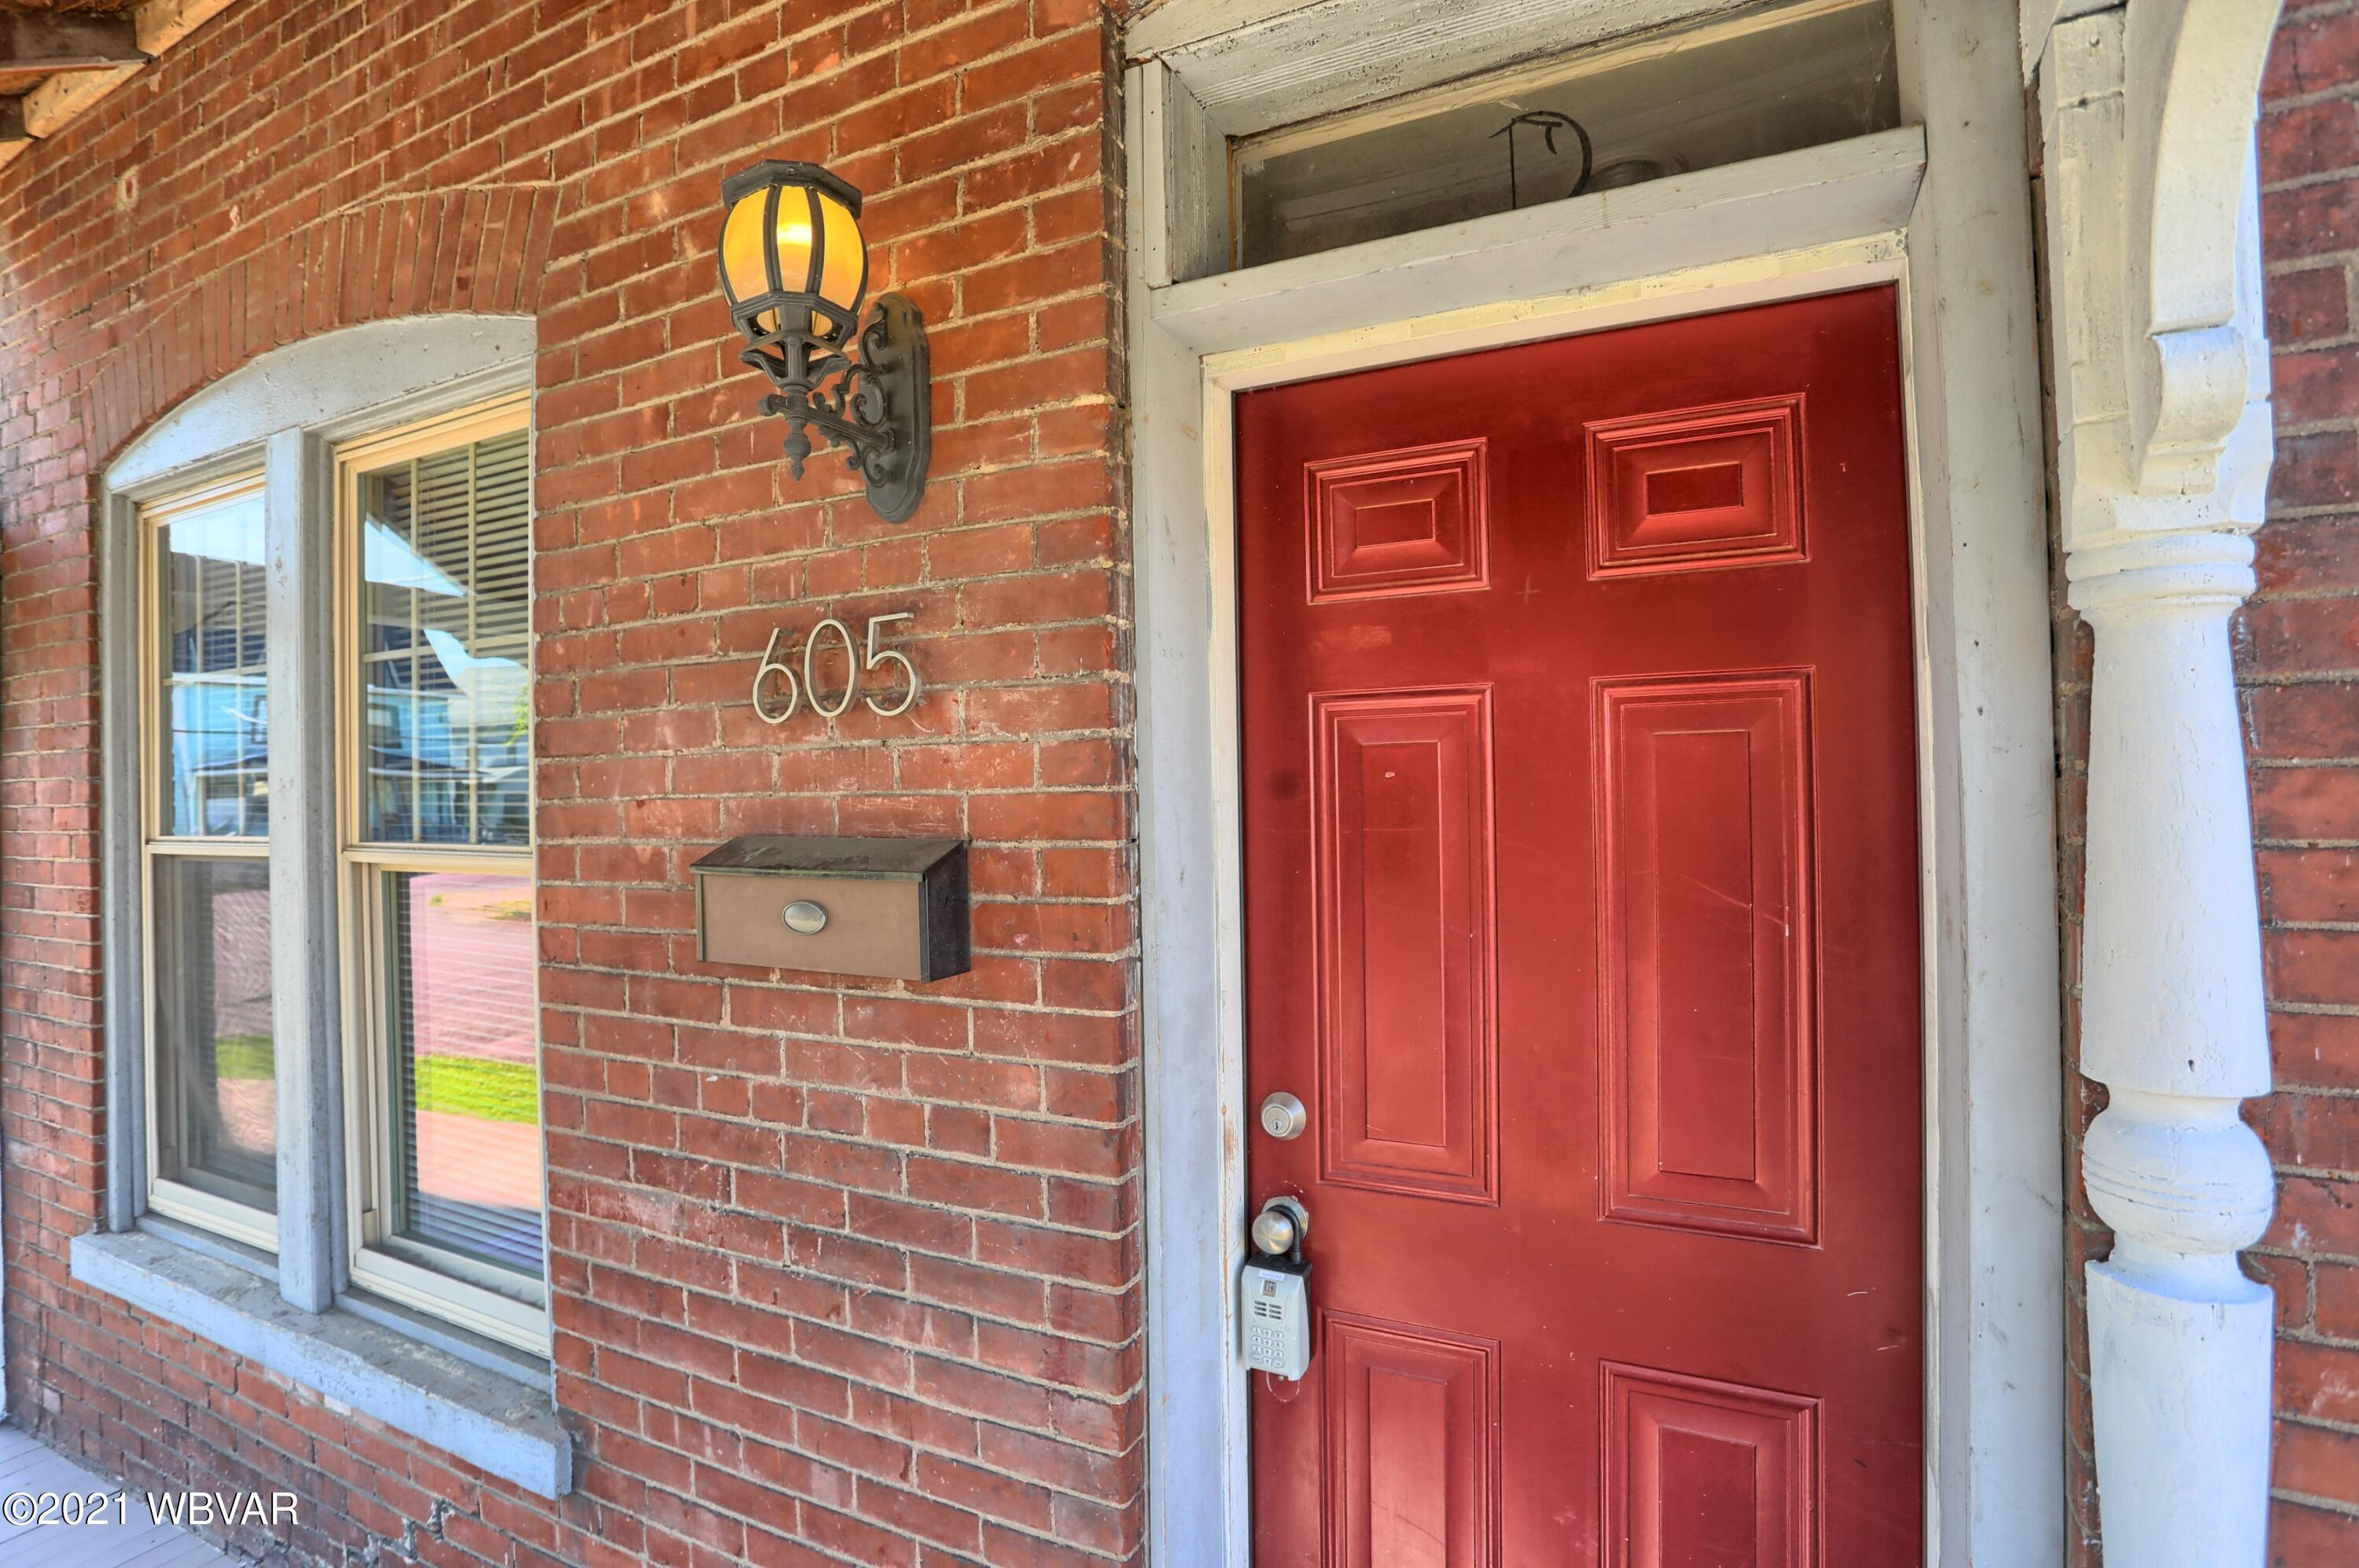 605 GRACE STREET, Williamsport, PA 17701, 2 Bedrooms Bedrooms, ,2 BathroomsBathrooms,Residential,For sale,GRACE,WB-92792